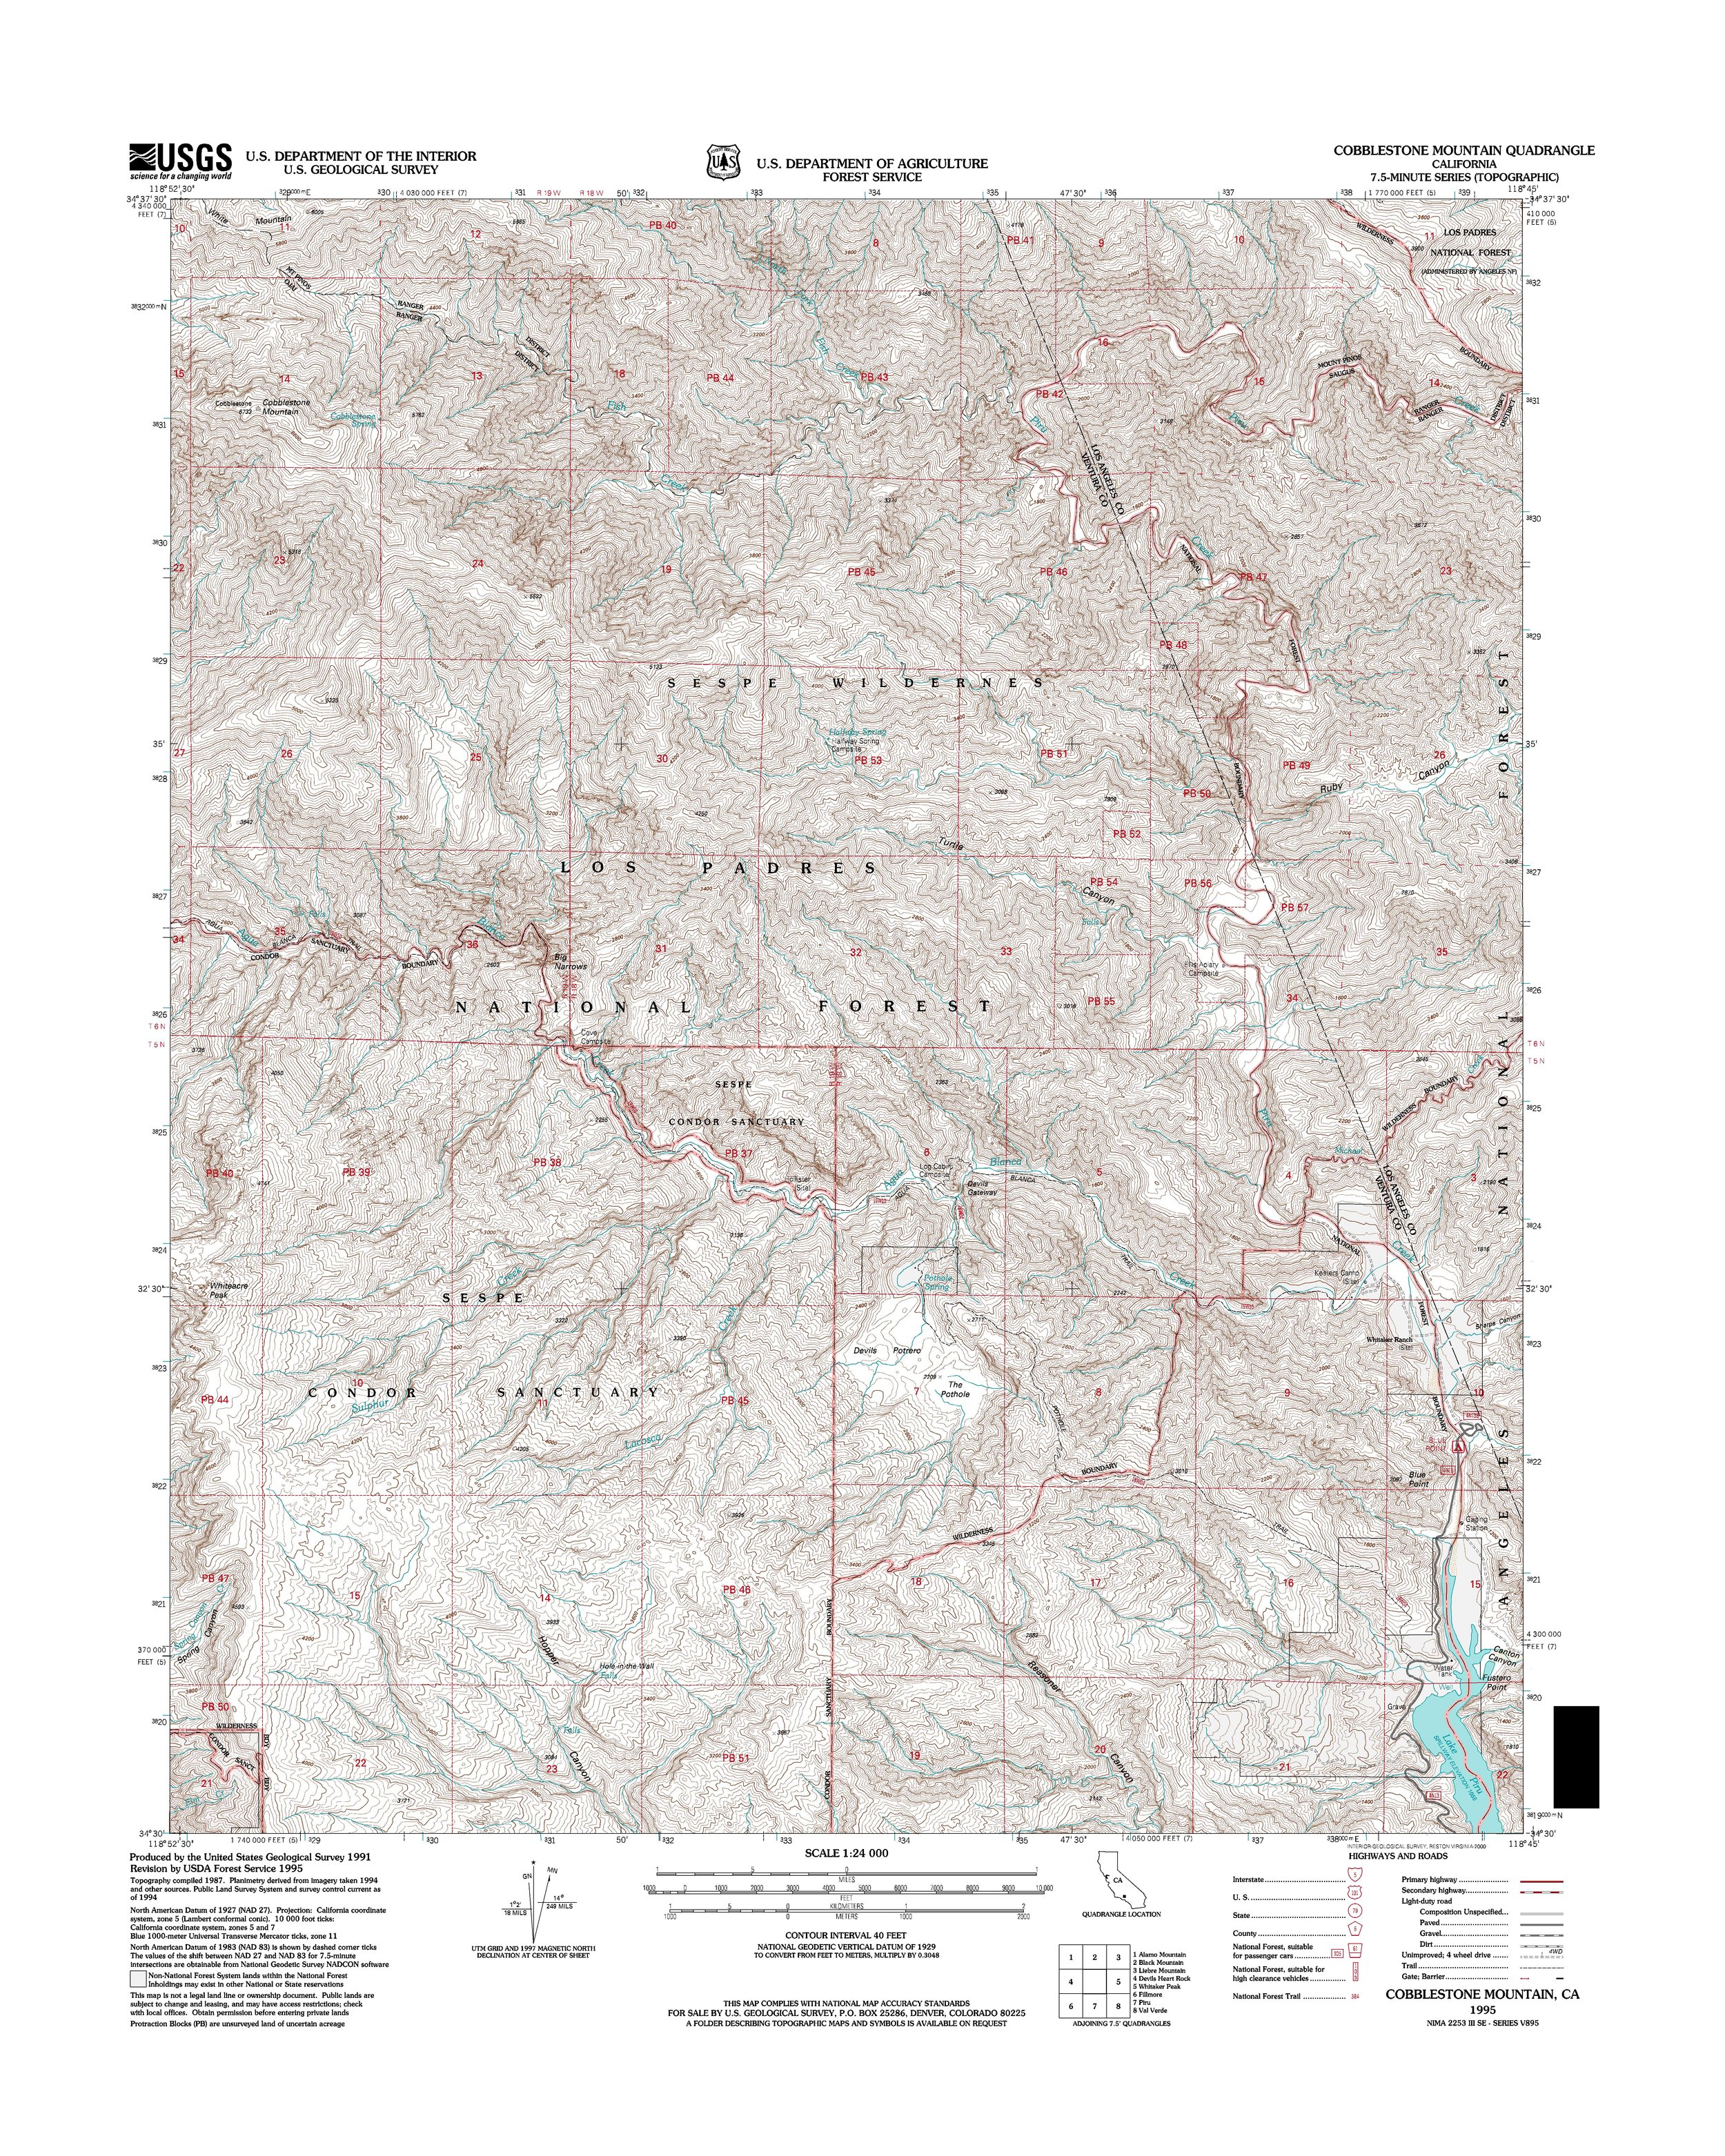 Cobblestone Mountain Topography Map